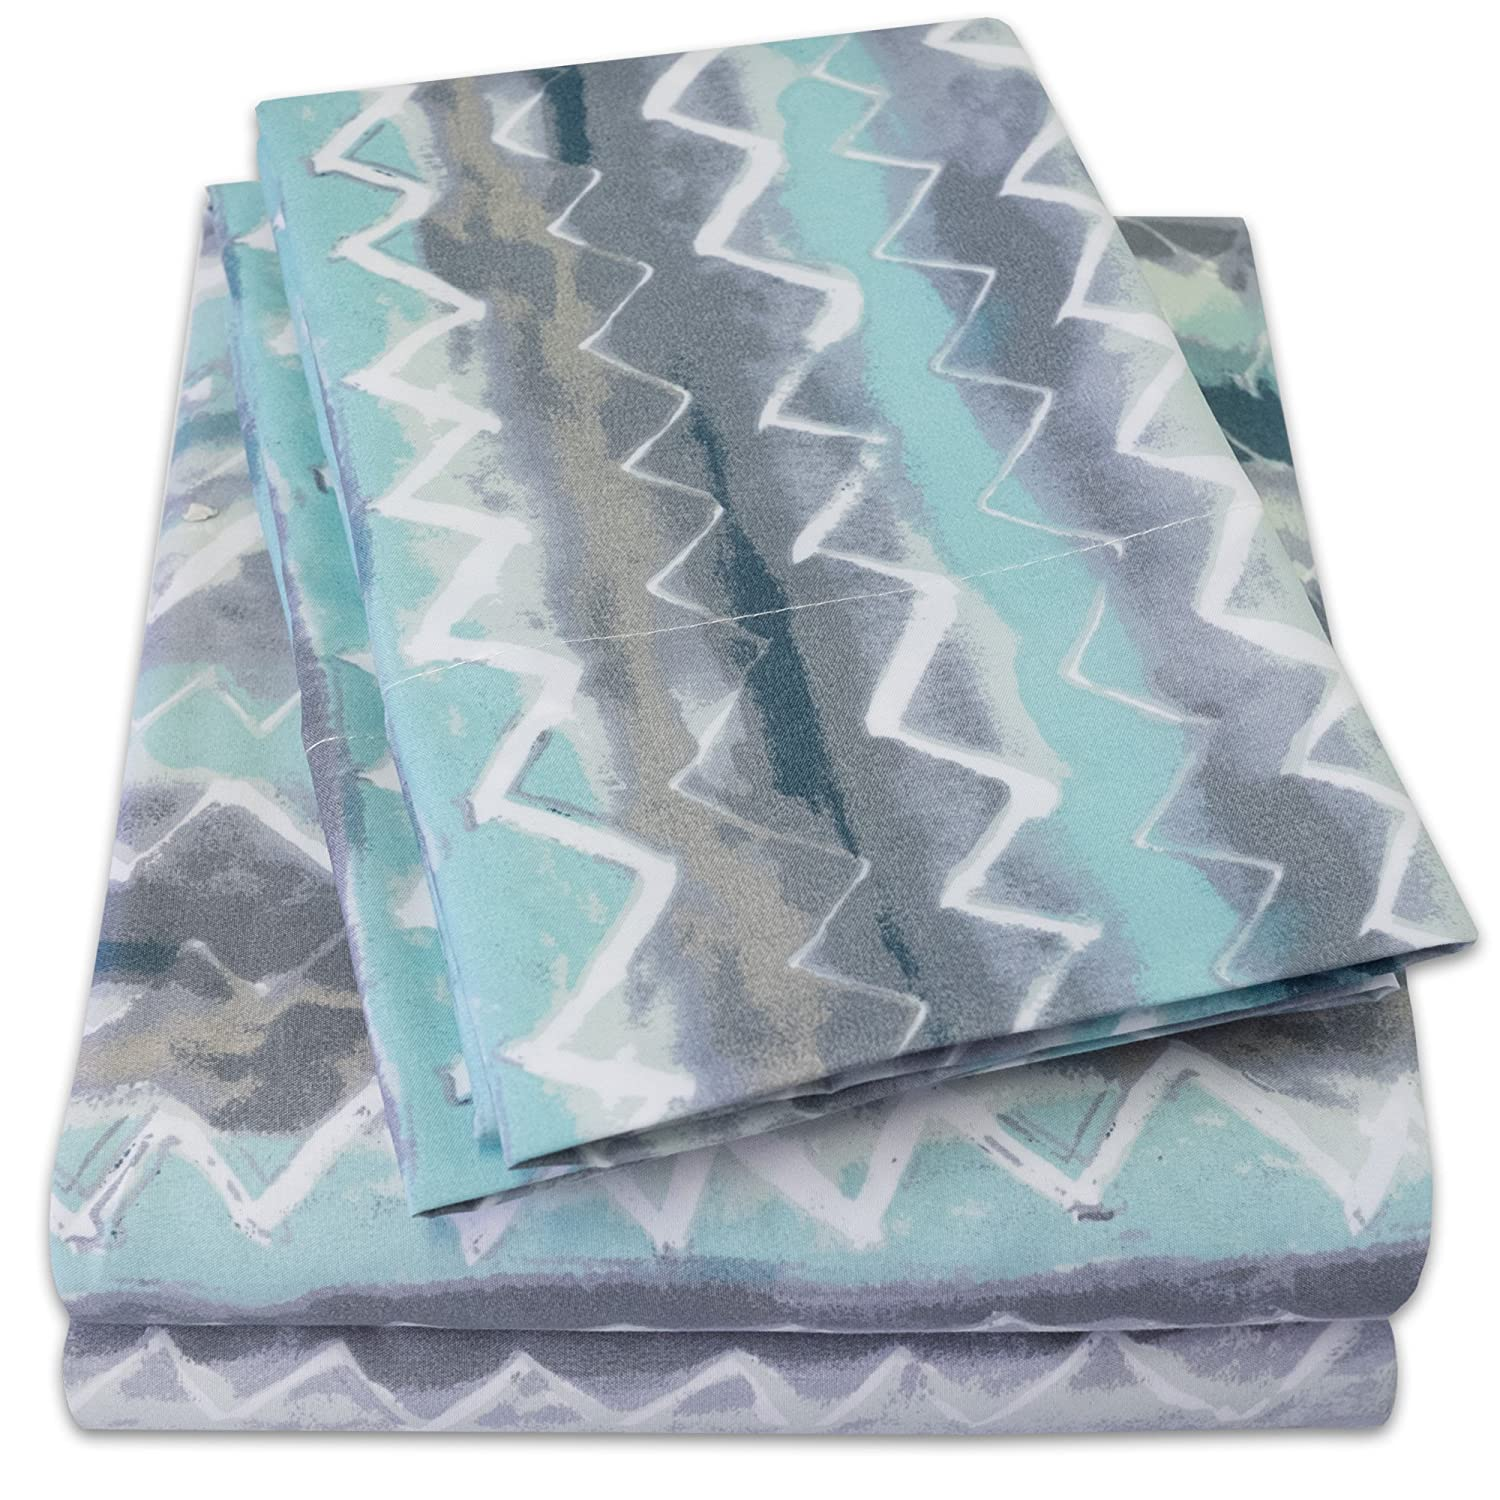 1500 Supreme Collection Extra Soft Summerset Ocean Vibe Chevron Pattern Sheet Set, King - Luxury Bed Sheets Set with Deep Pocket Wrinkle Free Hypoallergenic Bedding, Trending Printed Pattern, King